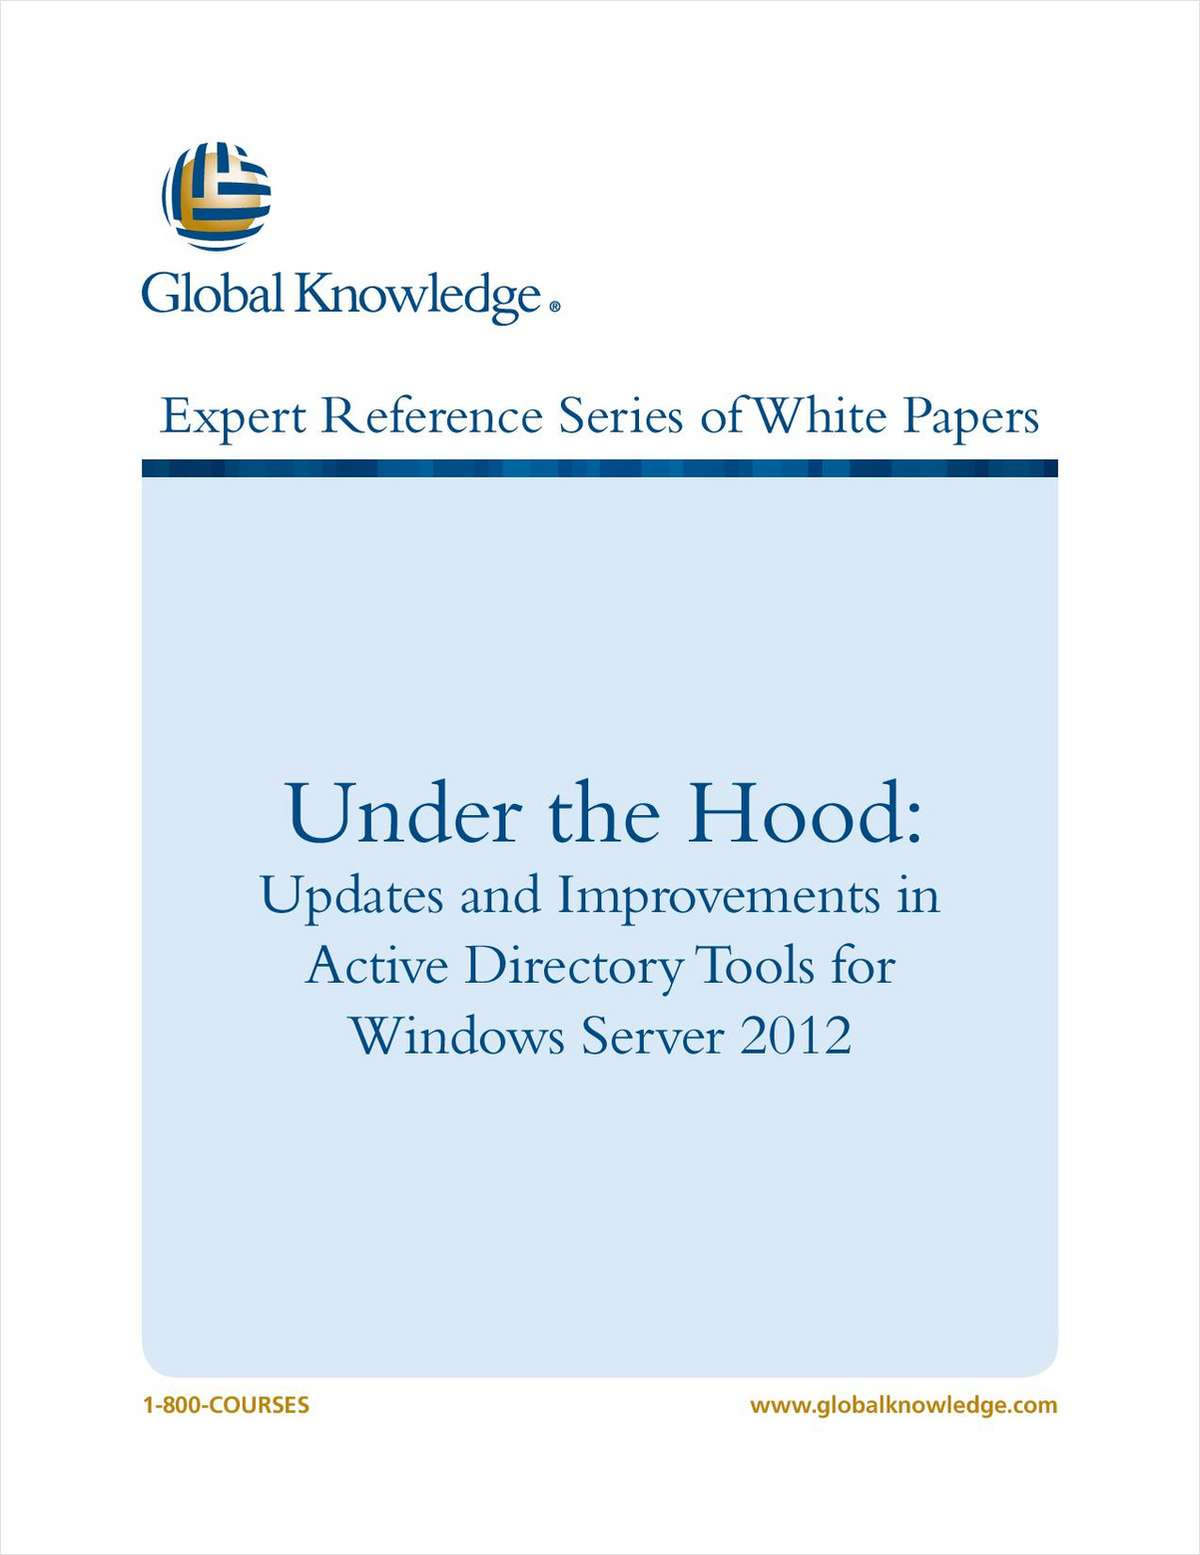 Under the Hood: Updates and Improvements in Active Directory Tools for Windows Server 2012